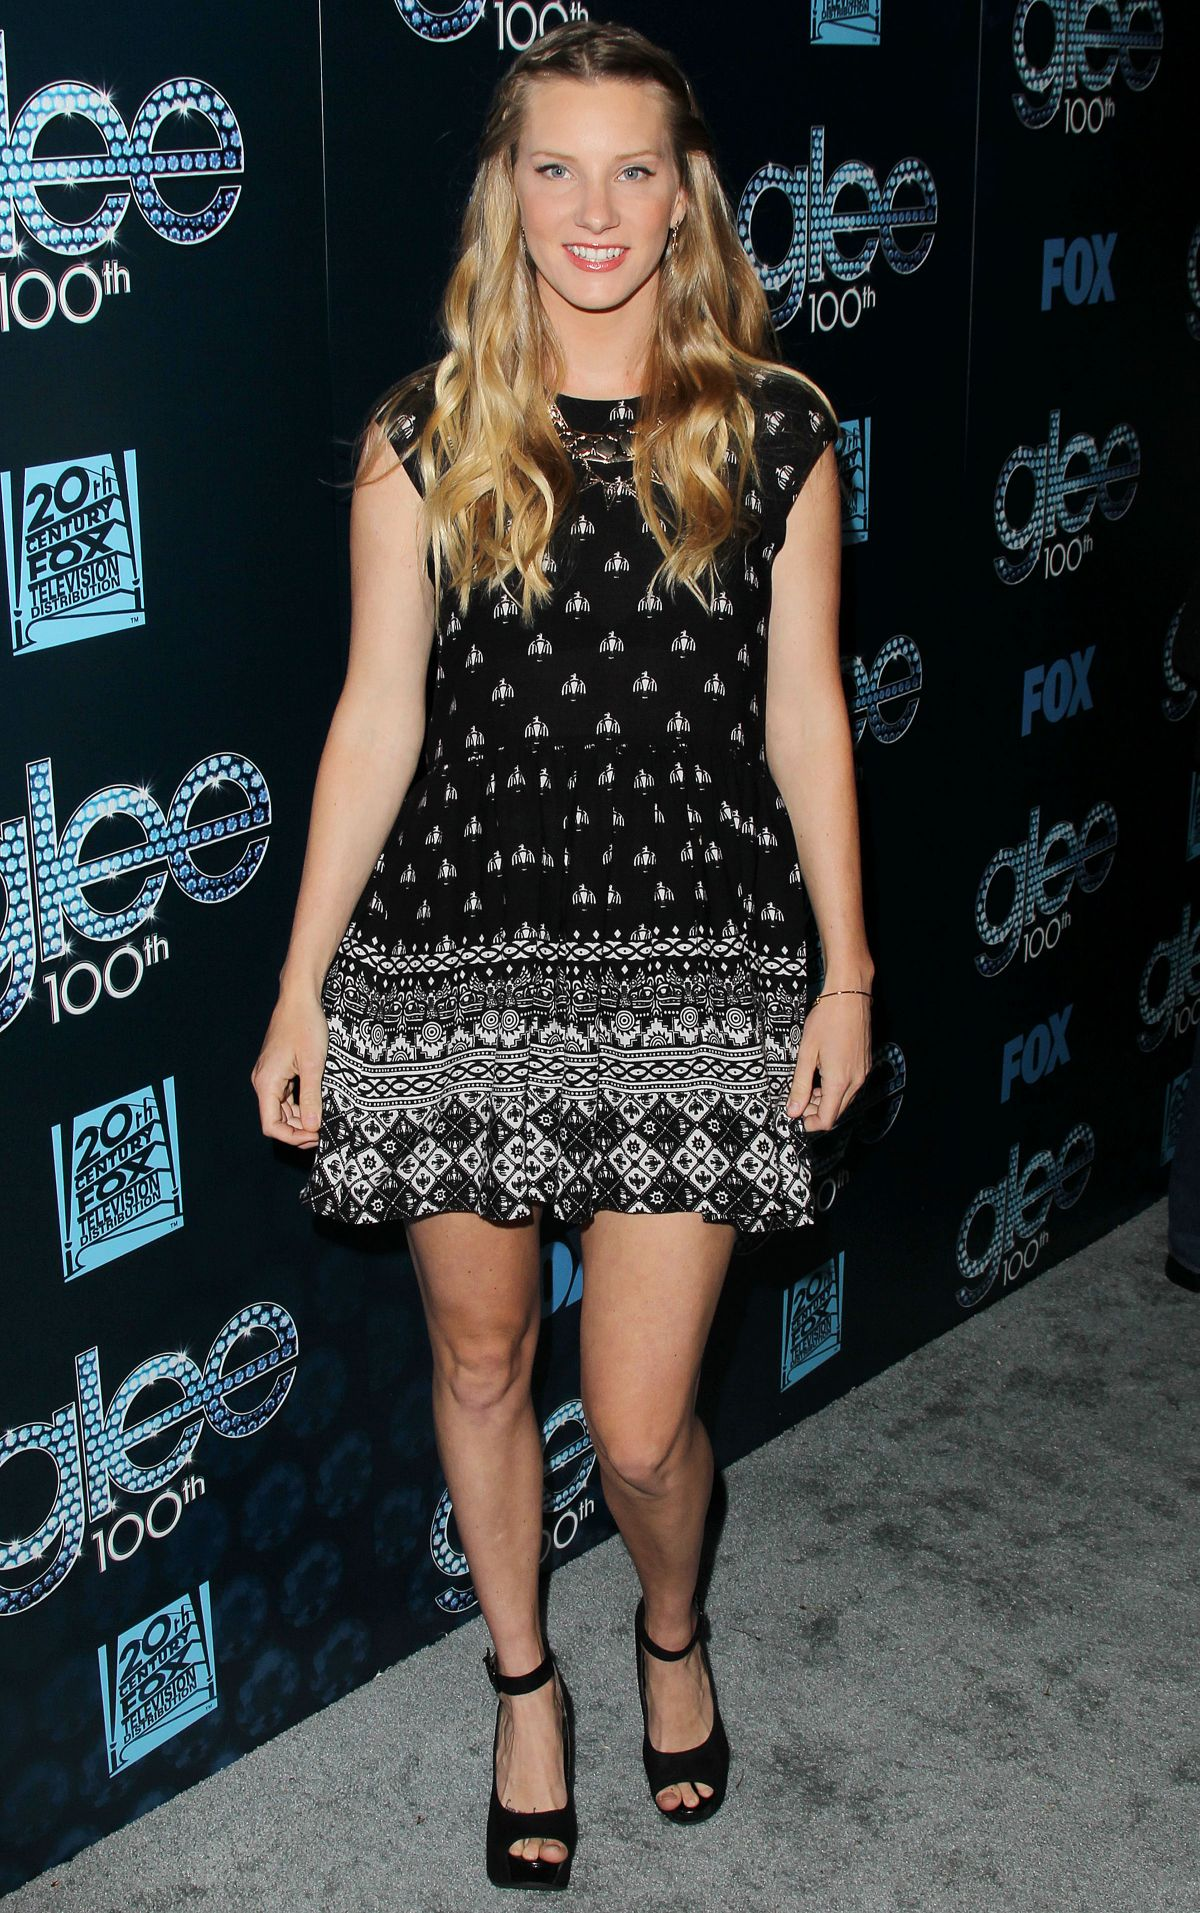 HEATHER MORRIS at Glee 100th Episode Celebration in Los Angeles